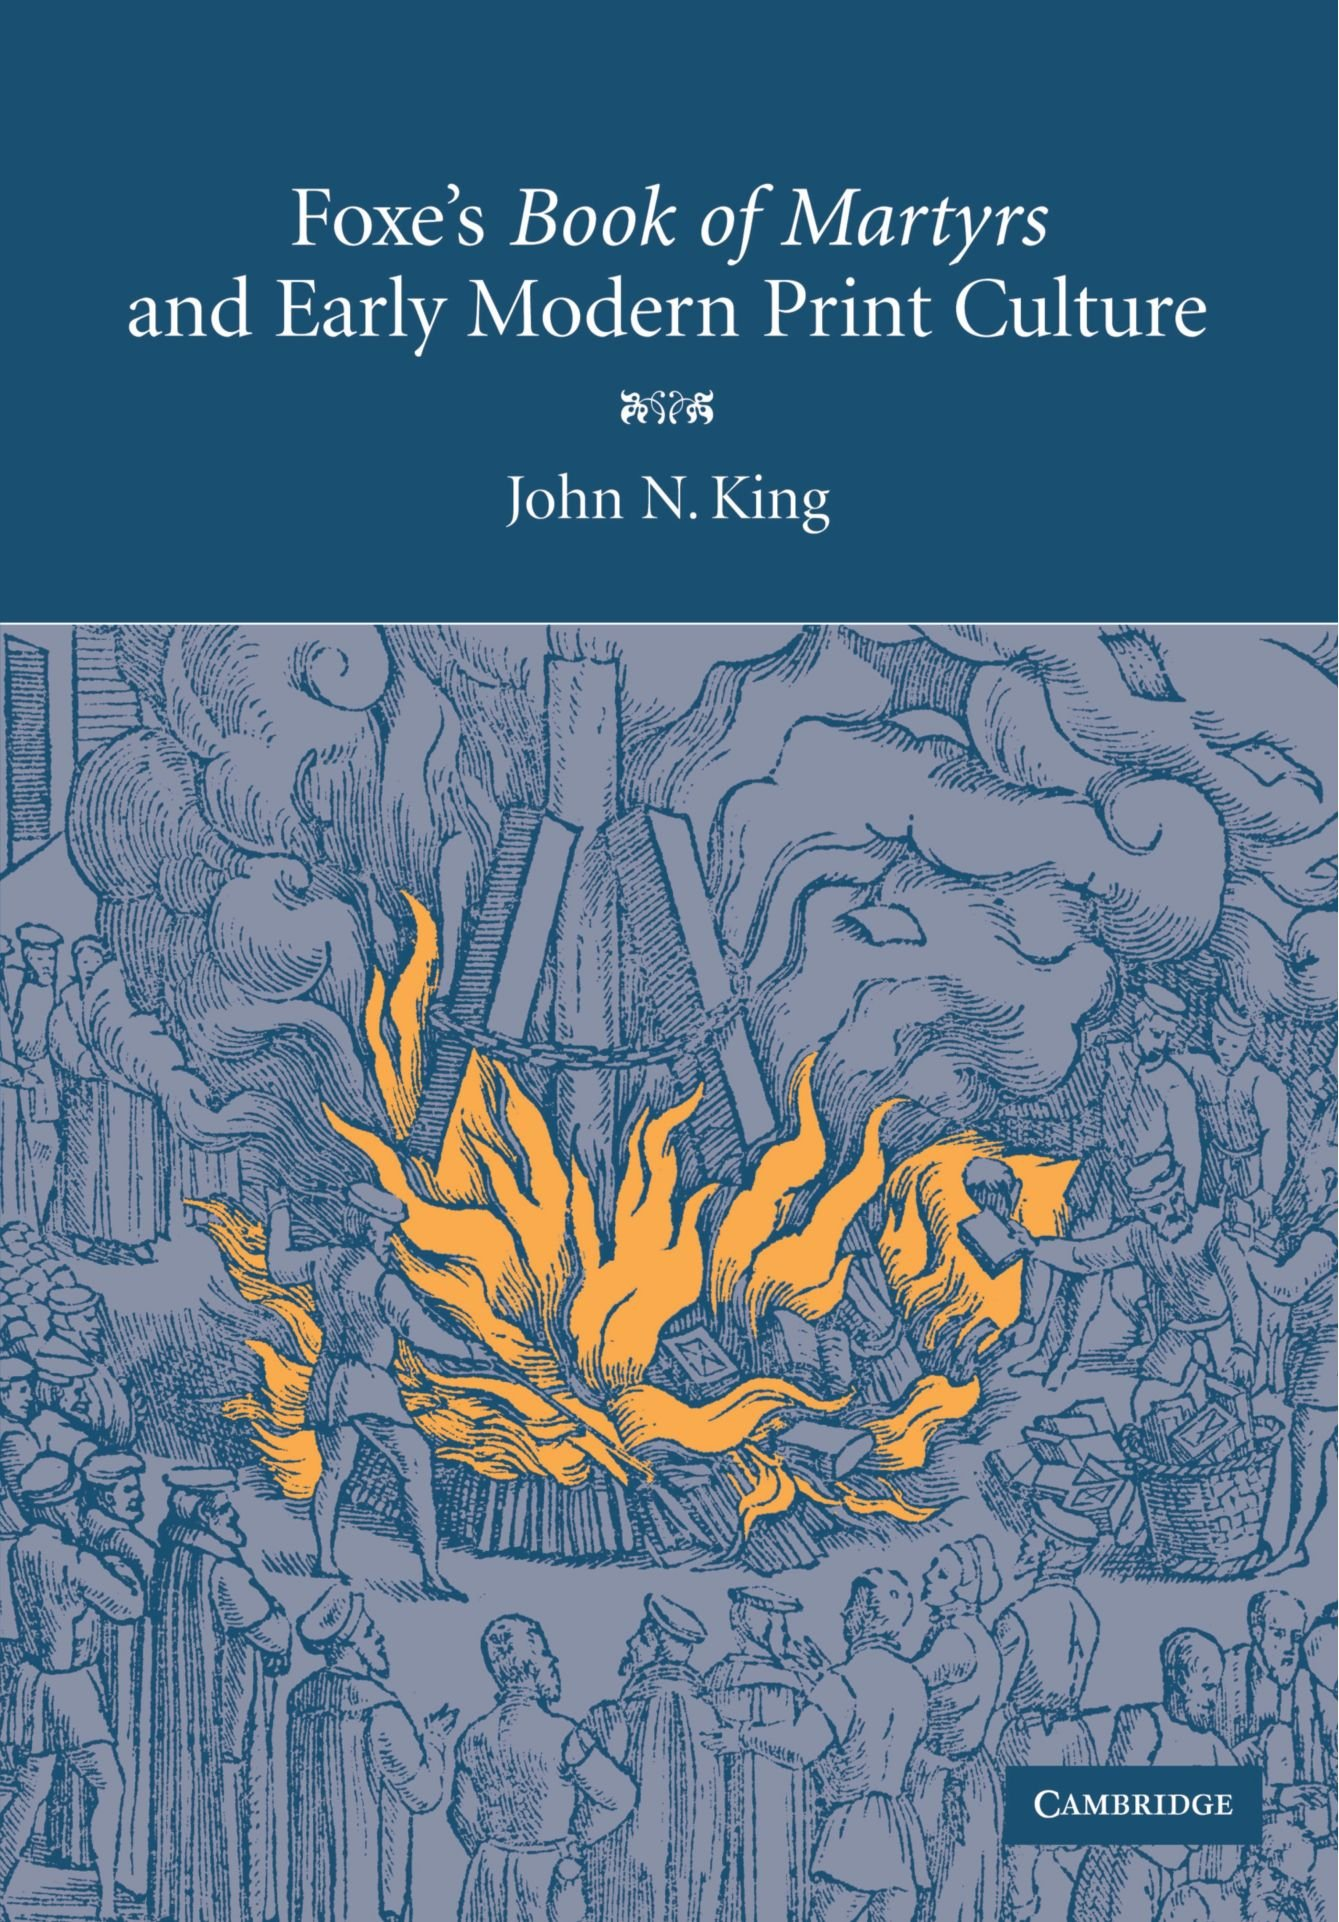 Foxe's 'Book of Martyrs' and Early Modern Print Culture by Cambridge University Press